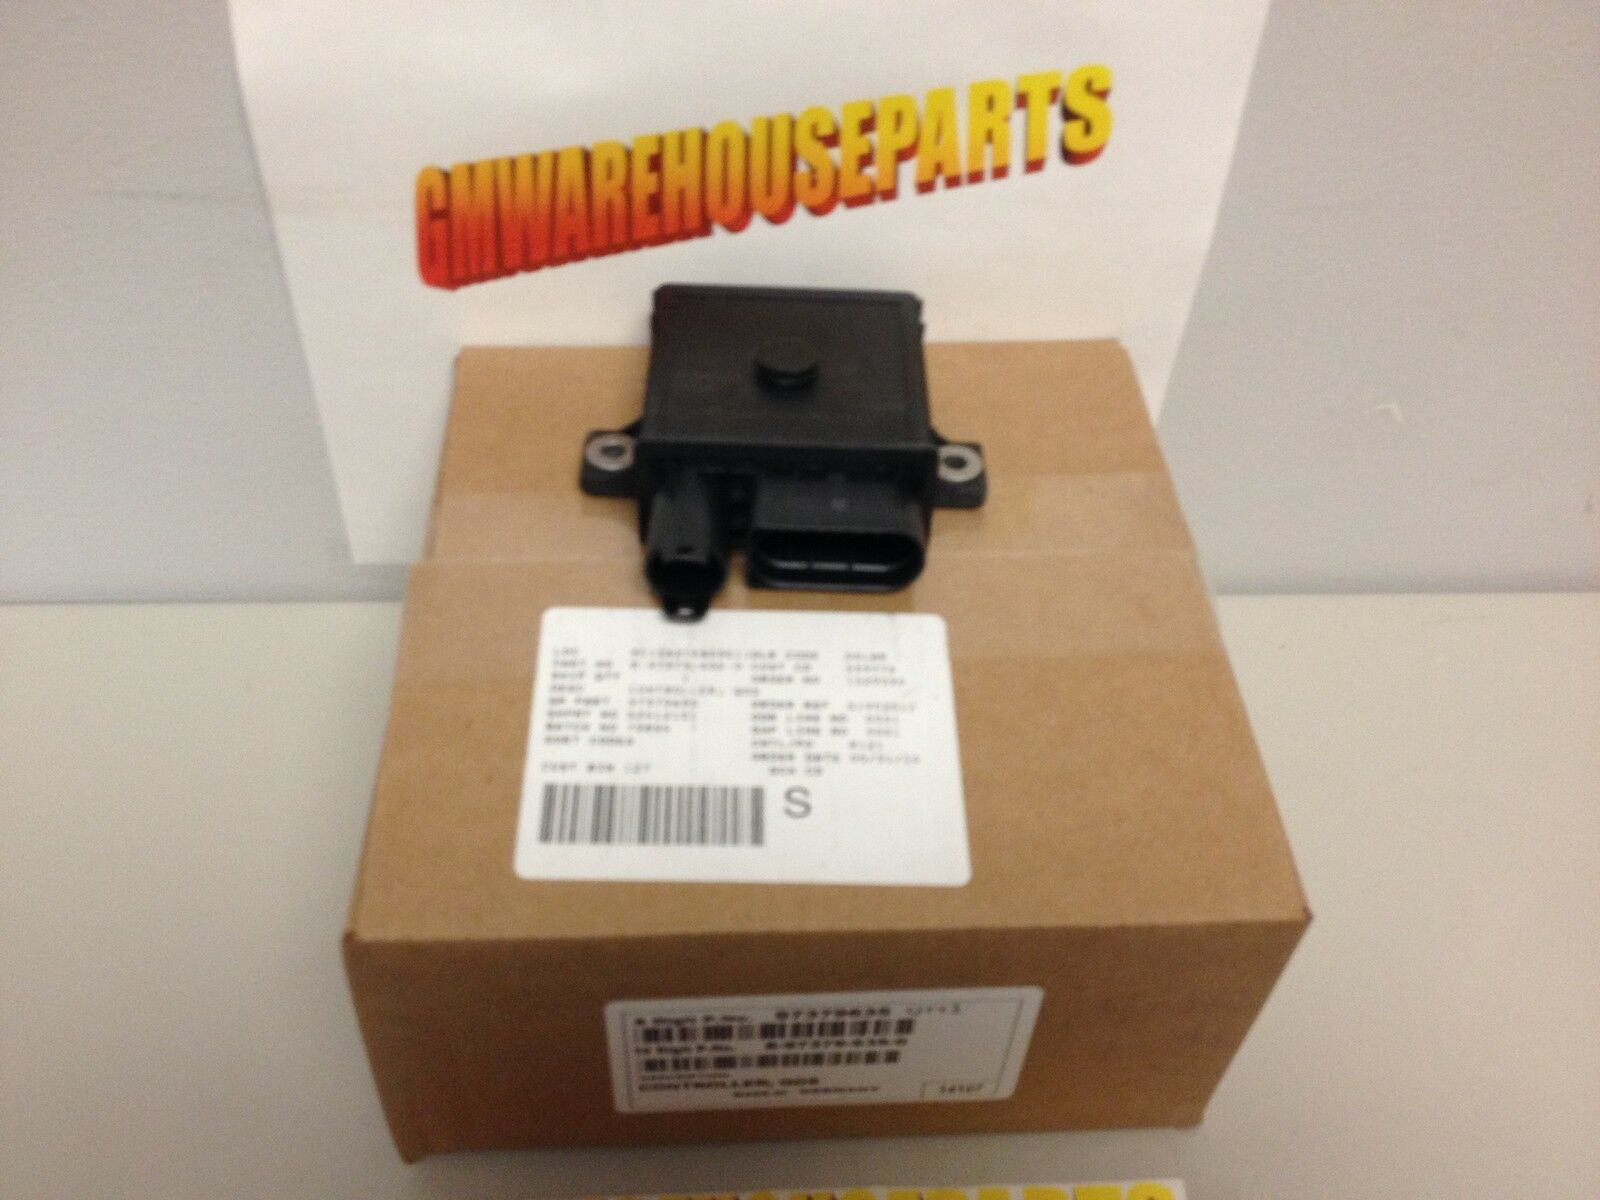 2004-2005 Duramax Lly Glow Plug Controller See Chart New Gm # 97379635 1 of  2Only 4 available ...